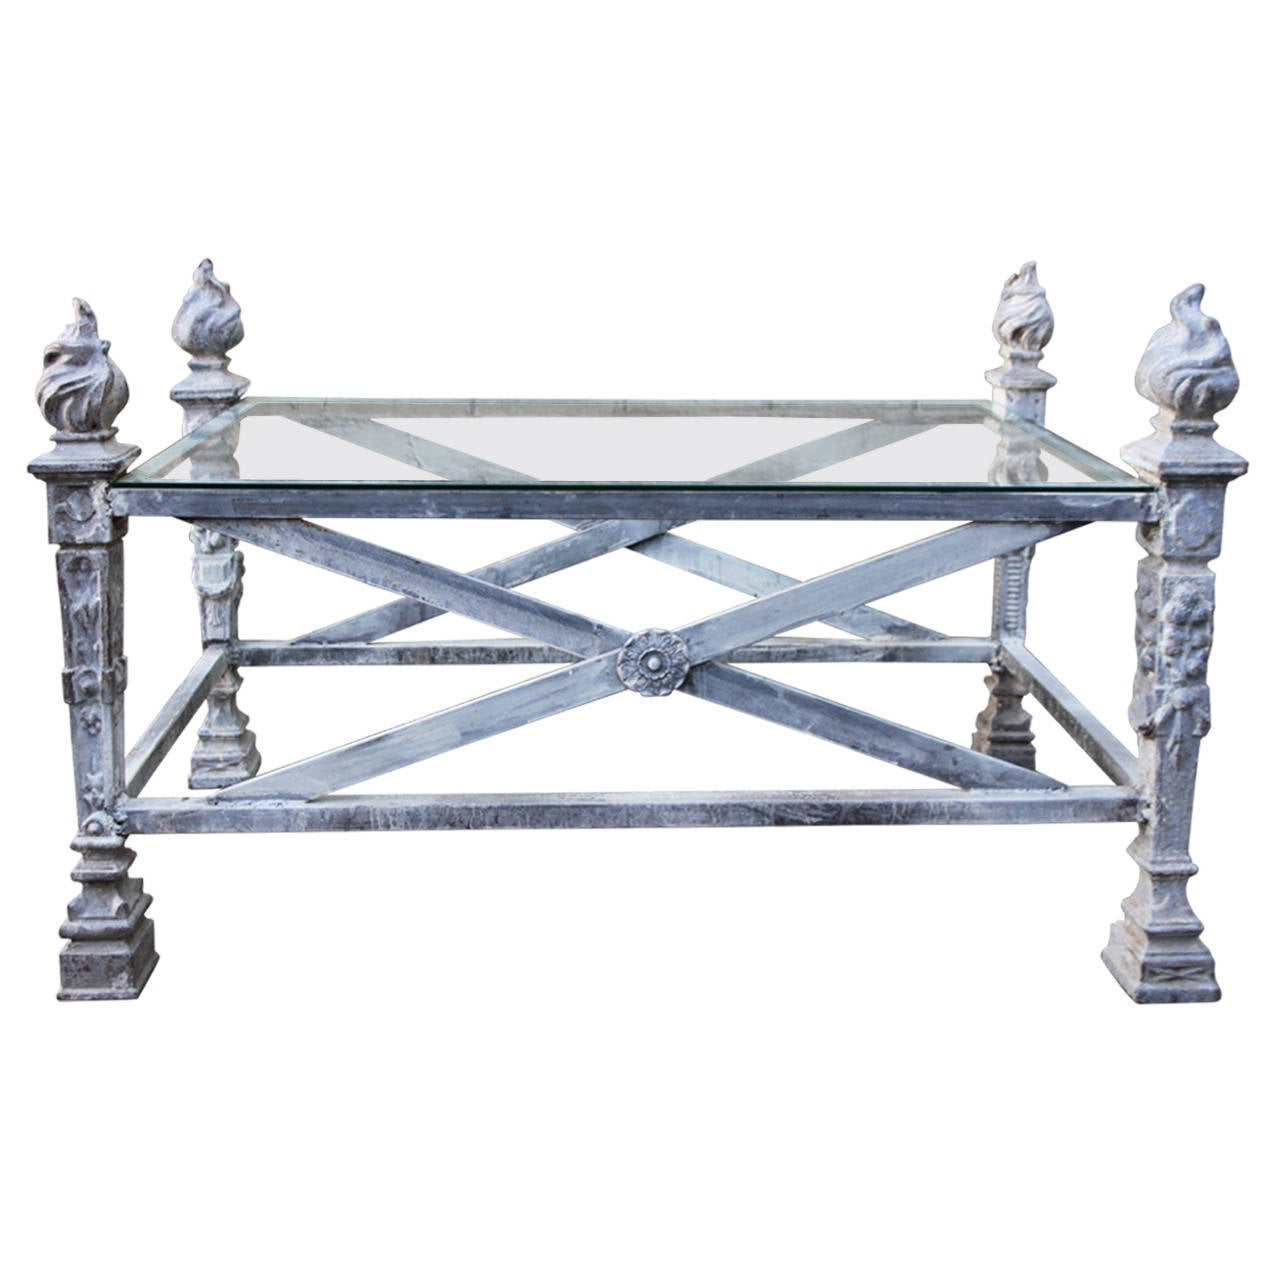 English Coffee Table With Flamed Torch Finials For Sale At 1stdibs